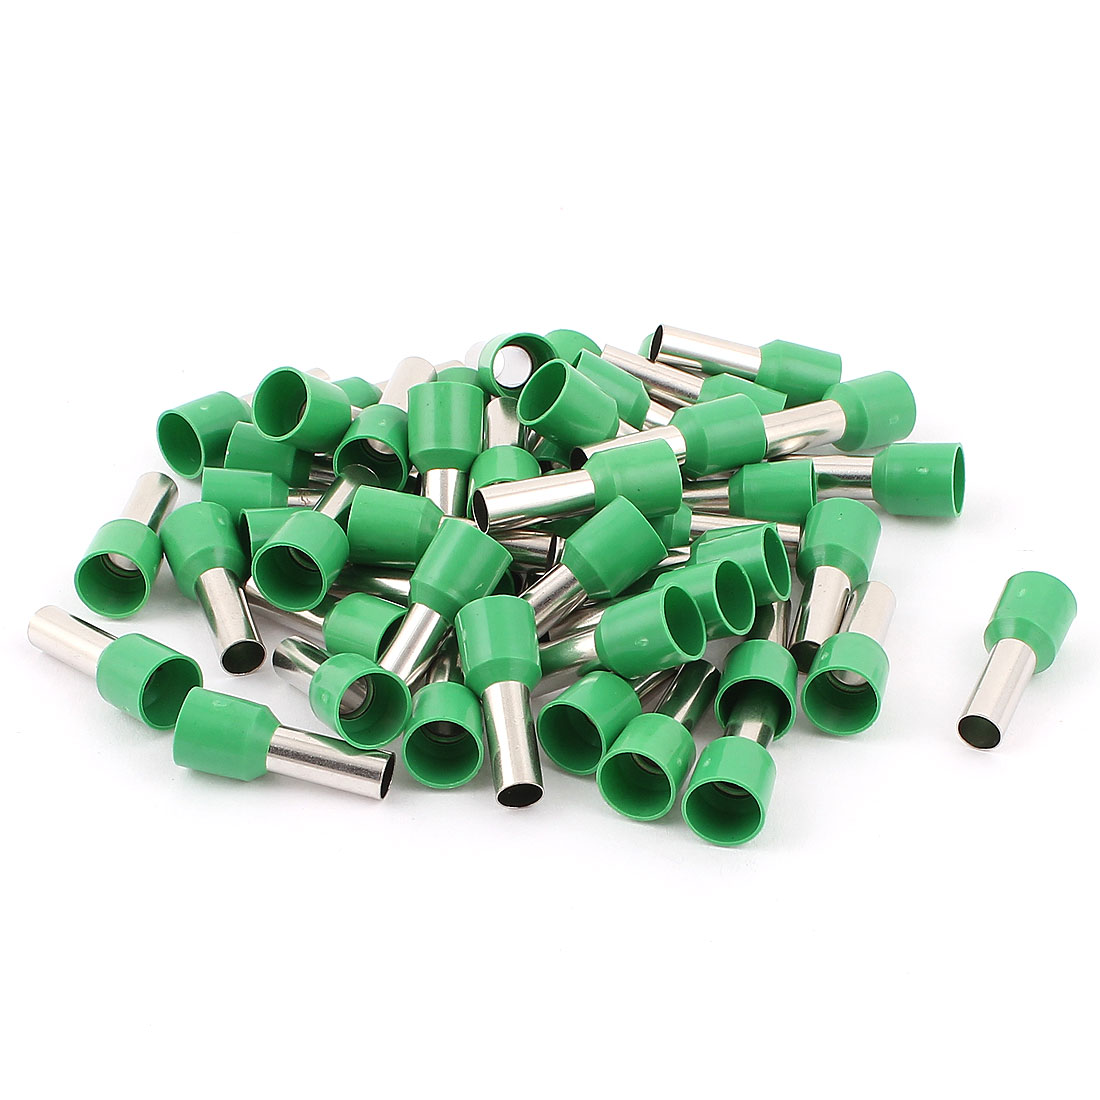 50Pcs E1012 Green Plastic Tube Pre Insulated Bootlace Ferrules Terminals Wiring Connector for 8AWG Cable